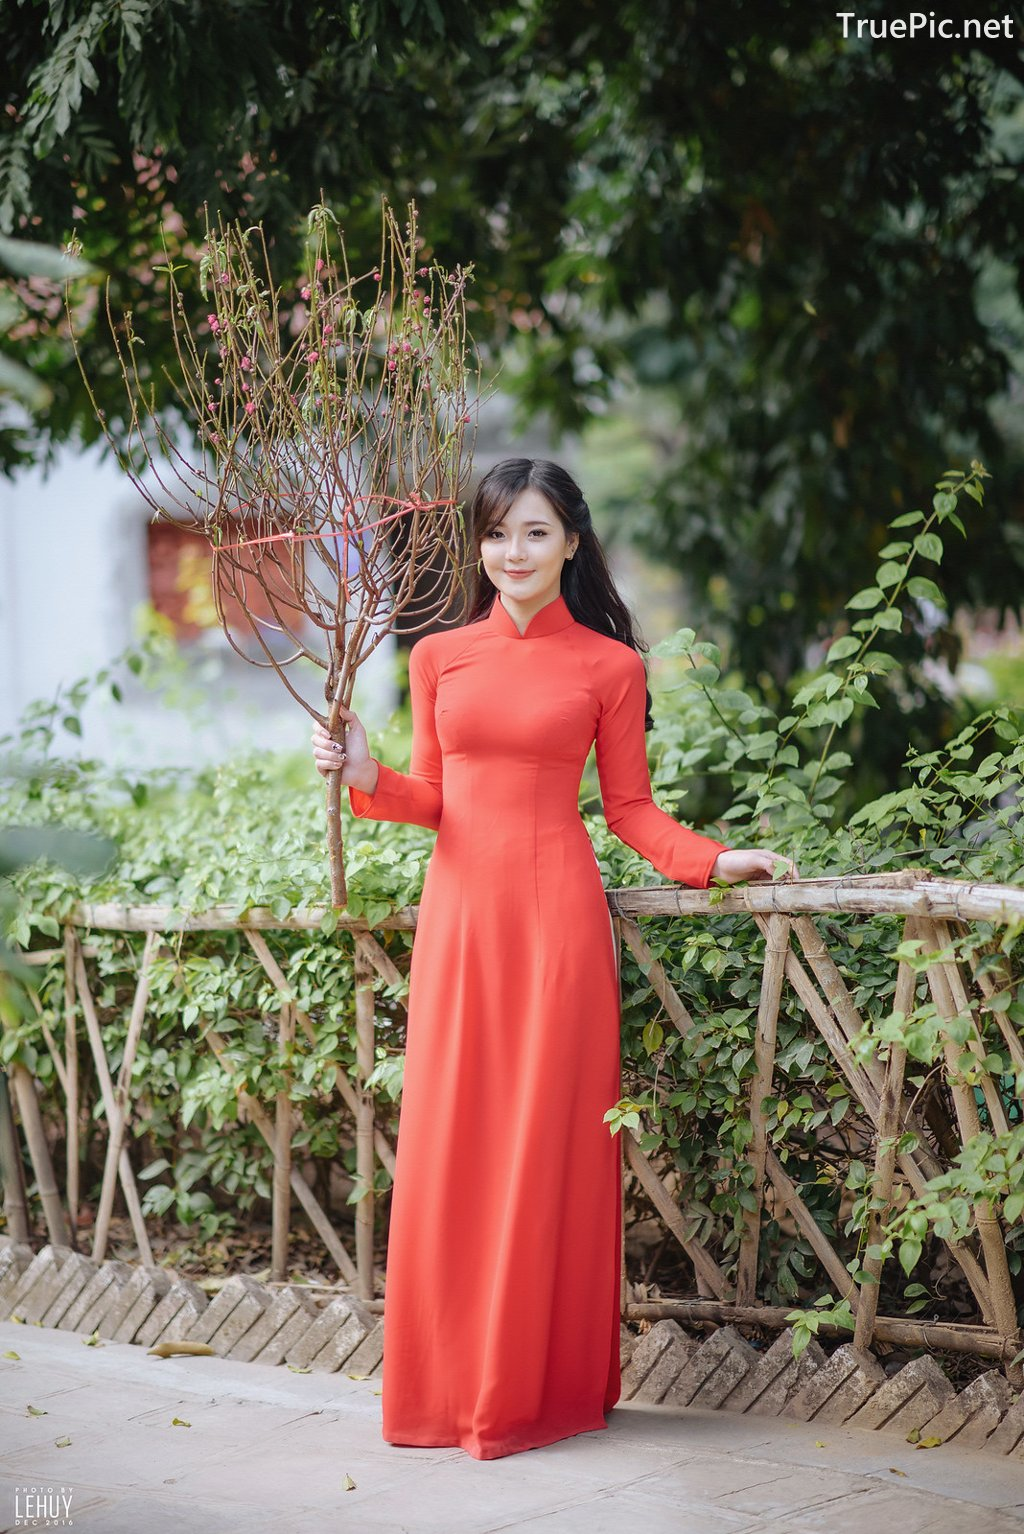 Image-Vietnamese-Model-Beautiful-Girl-and-Ao-Dai-Red-Vietnamese-Traditional-Dress-TruePic.net- Picture-1